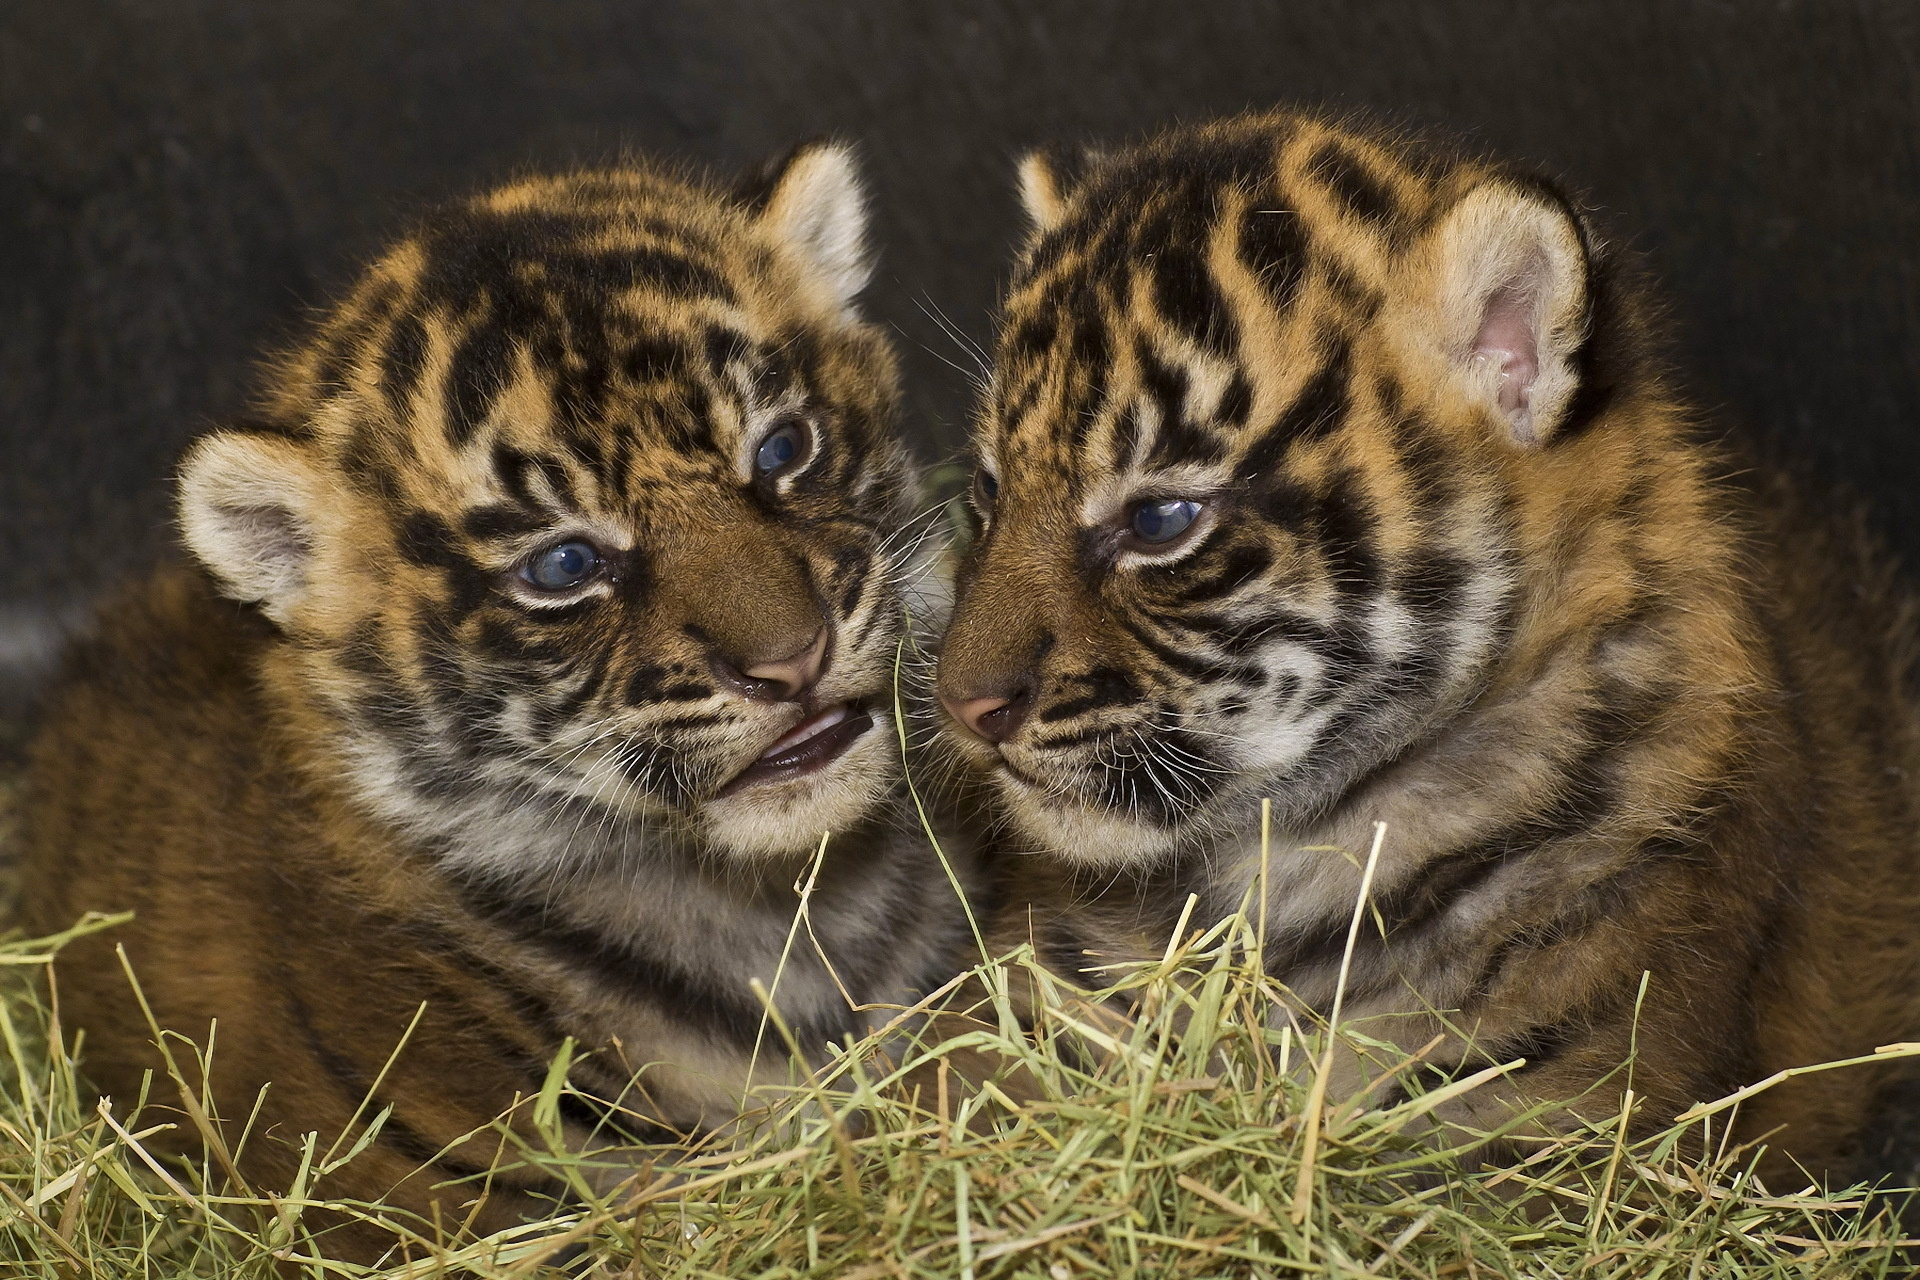 128293 Screensavers and Wallpapers Predators for phone. Download Animals, Grass, Tigers, Predators, Young, Aggression, Couple, Pair, To Lie Down, Lie, Sight, Opinion, Cubs, Tiger Cubs, Big Cats pictures for free